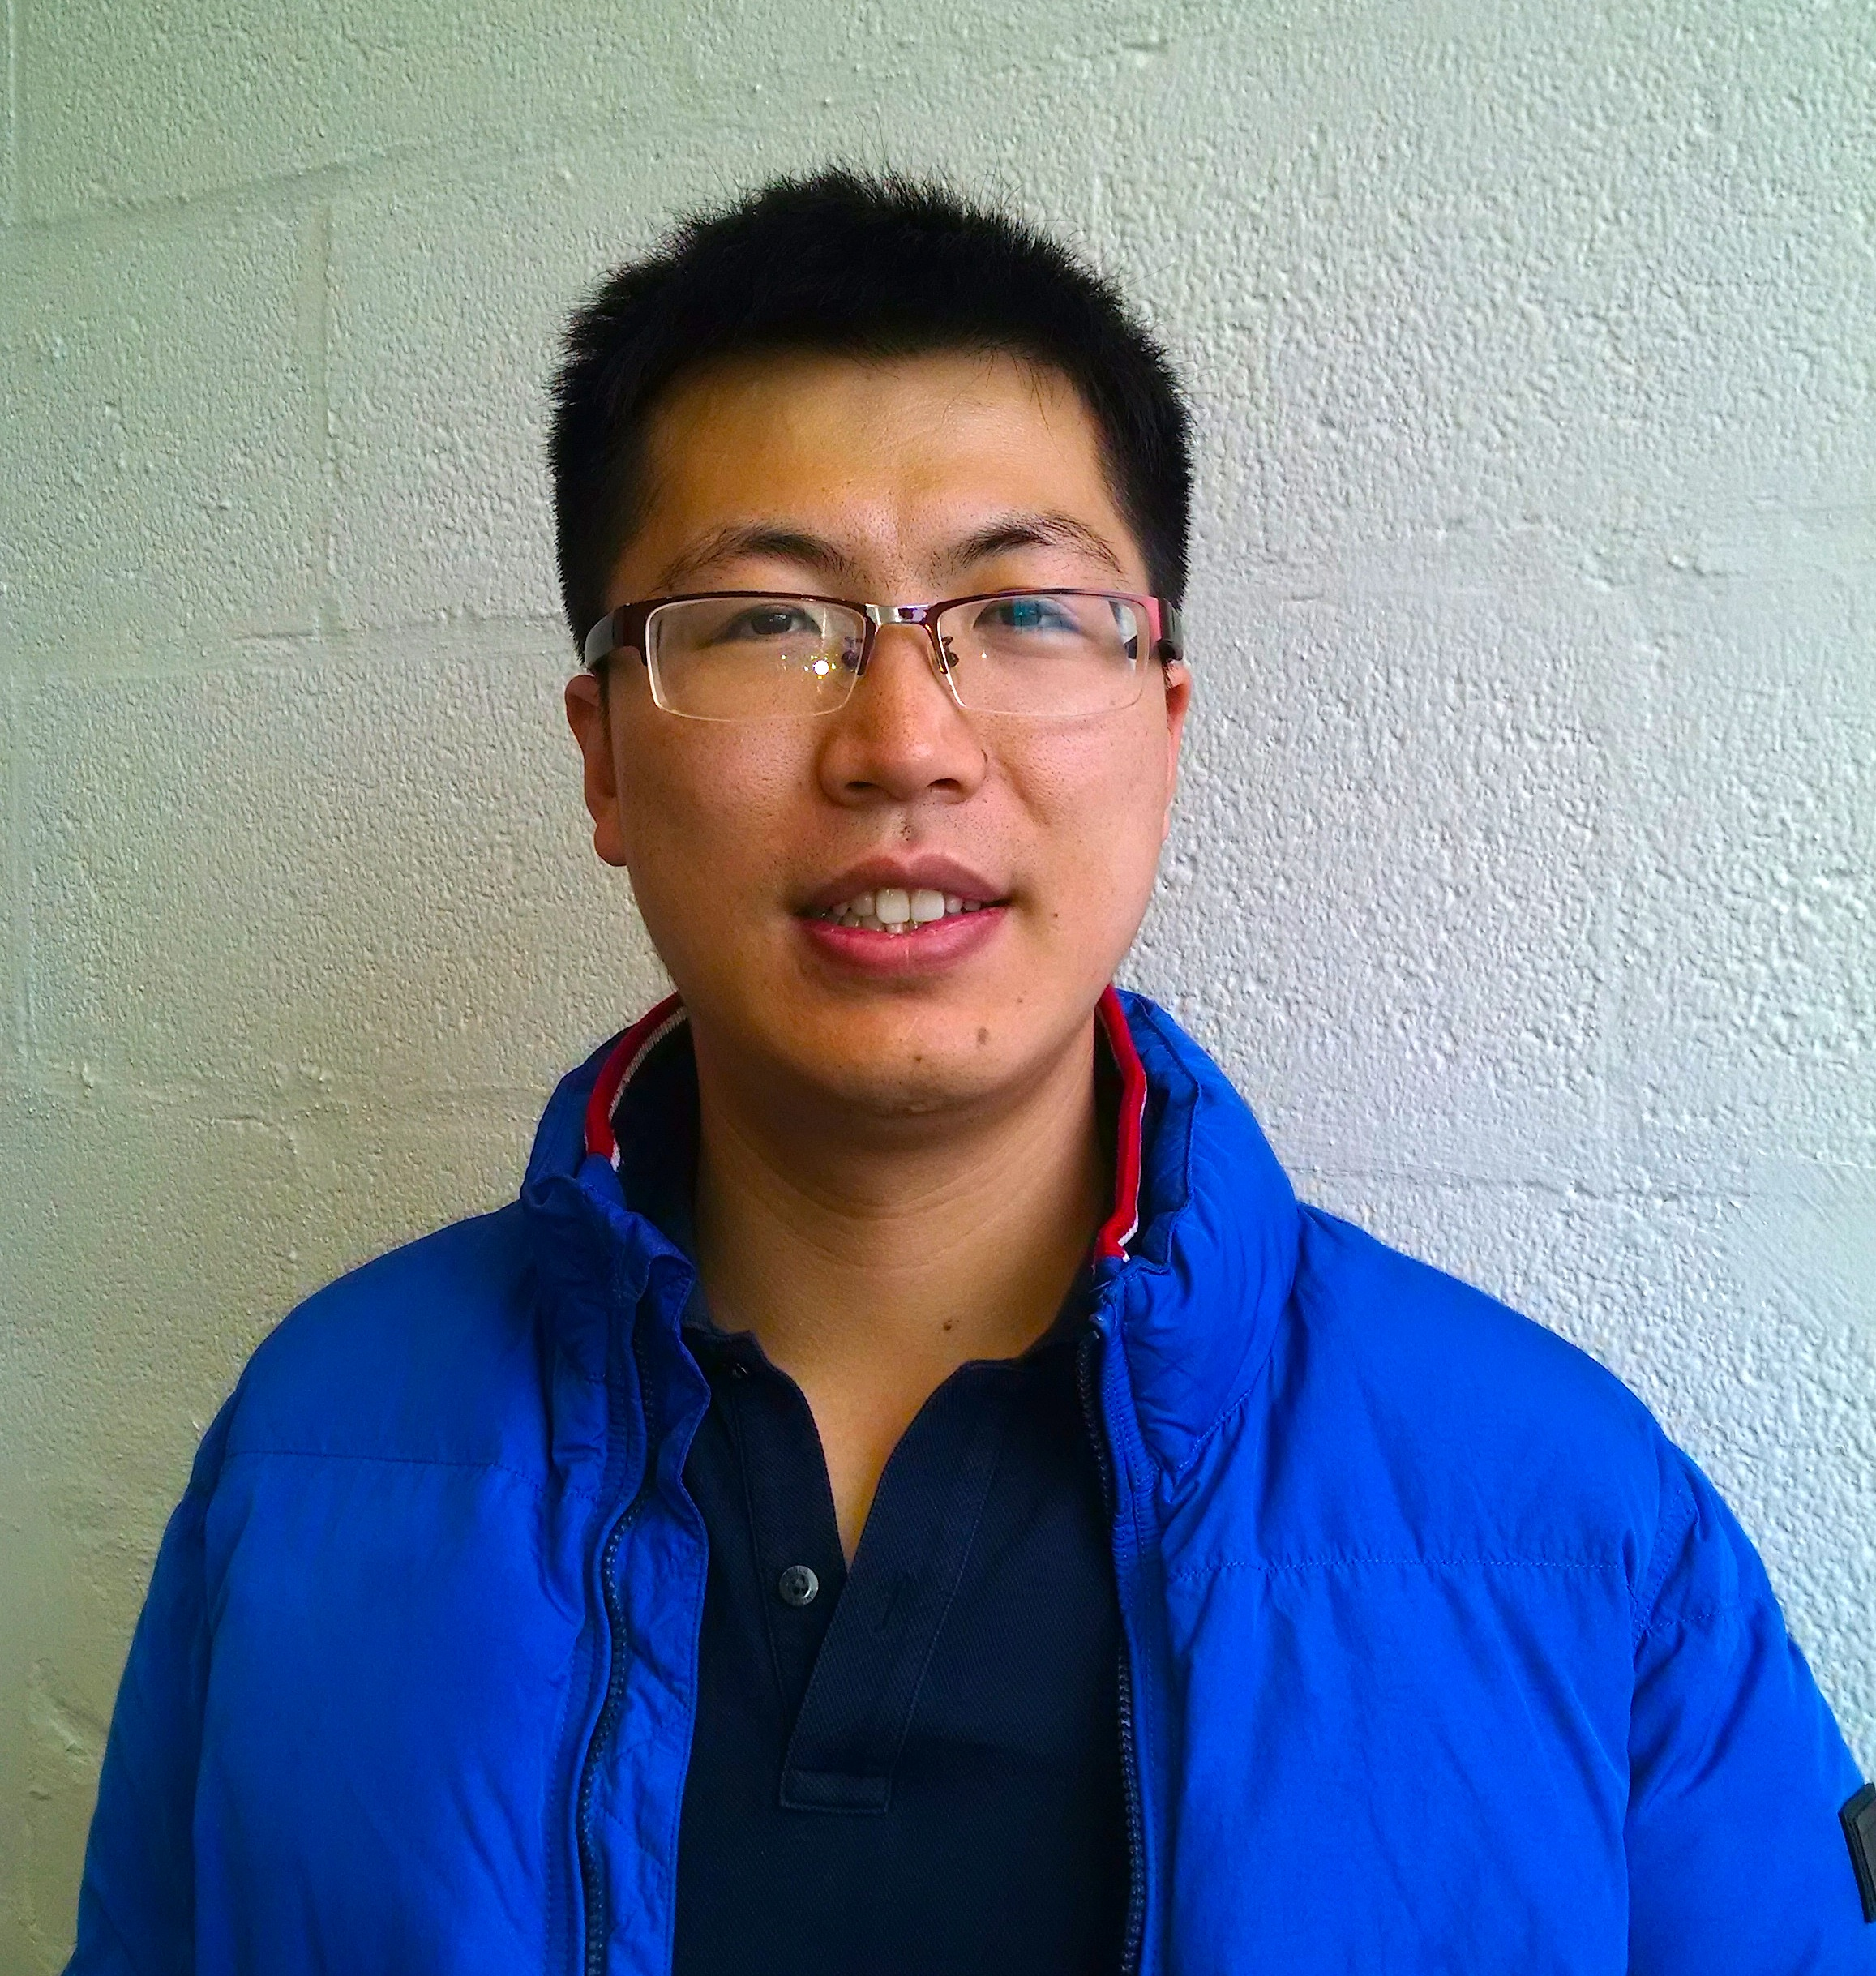 Image: First author and Chem/Bio PhD Candidate, Tao Gao.